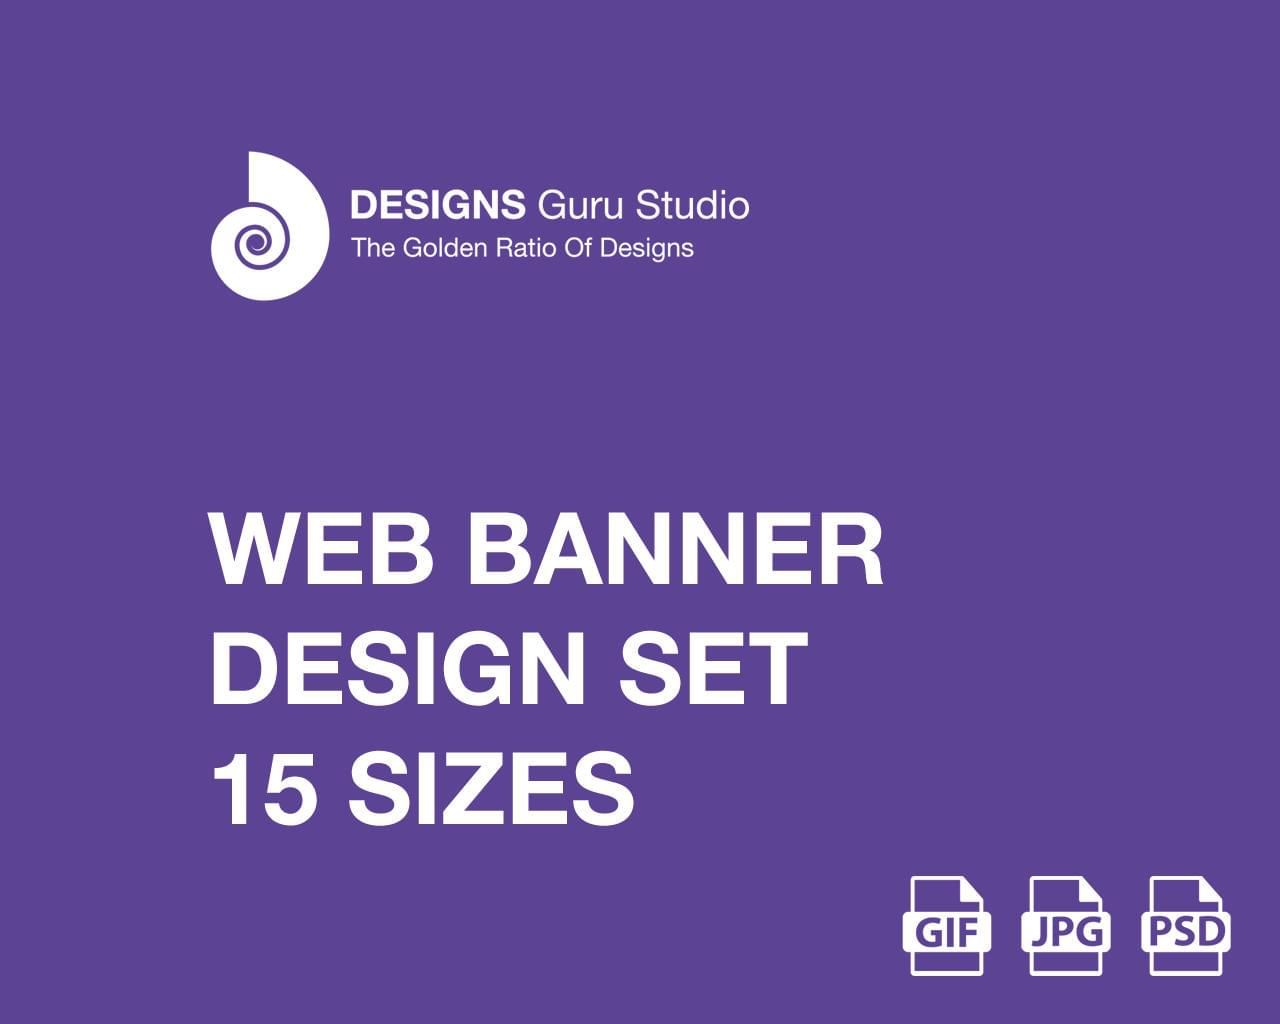 Web Banner Design Set - 15 Sizes by designsgurustudio - 117263